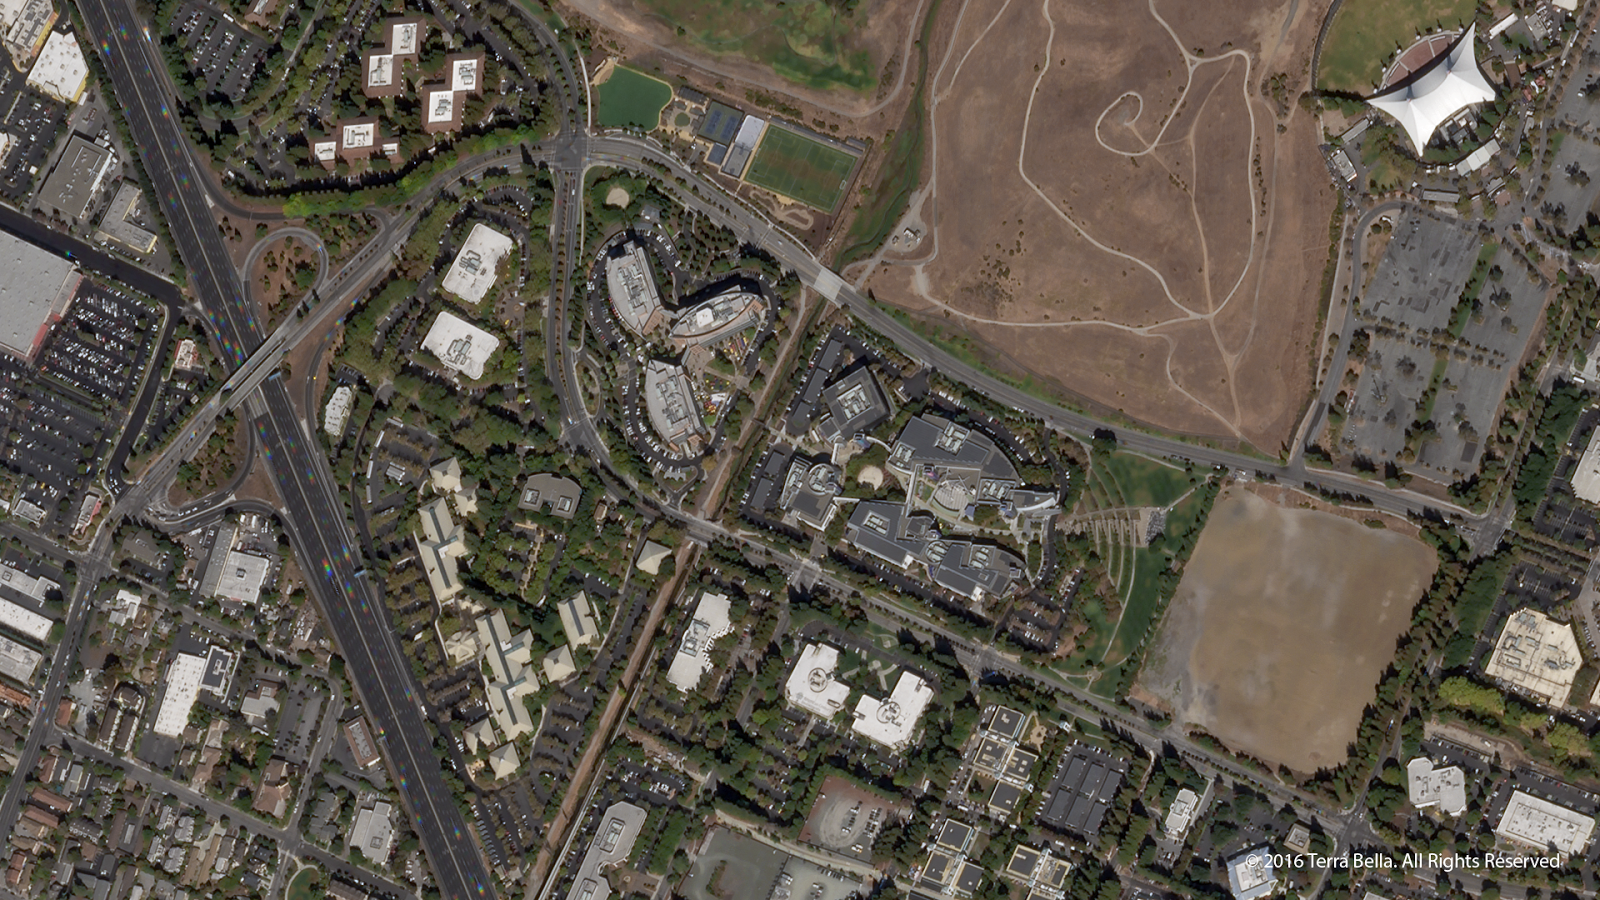 Terra Bella - Skysat 4-7 - First images - Premières images - Google - Mountain View - California - Silicon Valley - Googleplex - satellite d'observation - Skybox - MTV